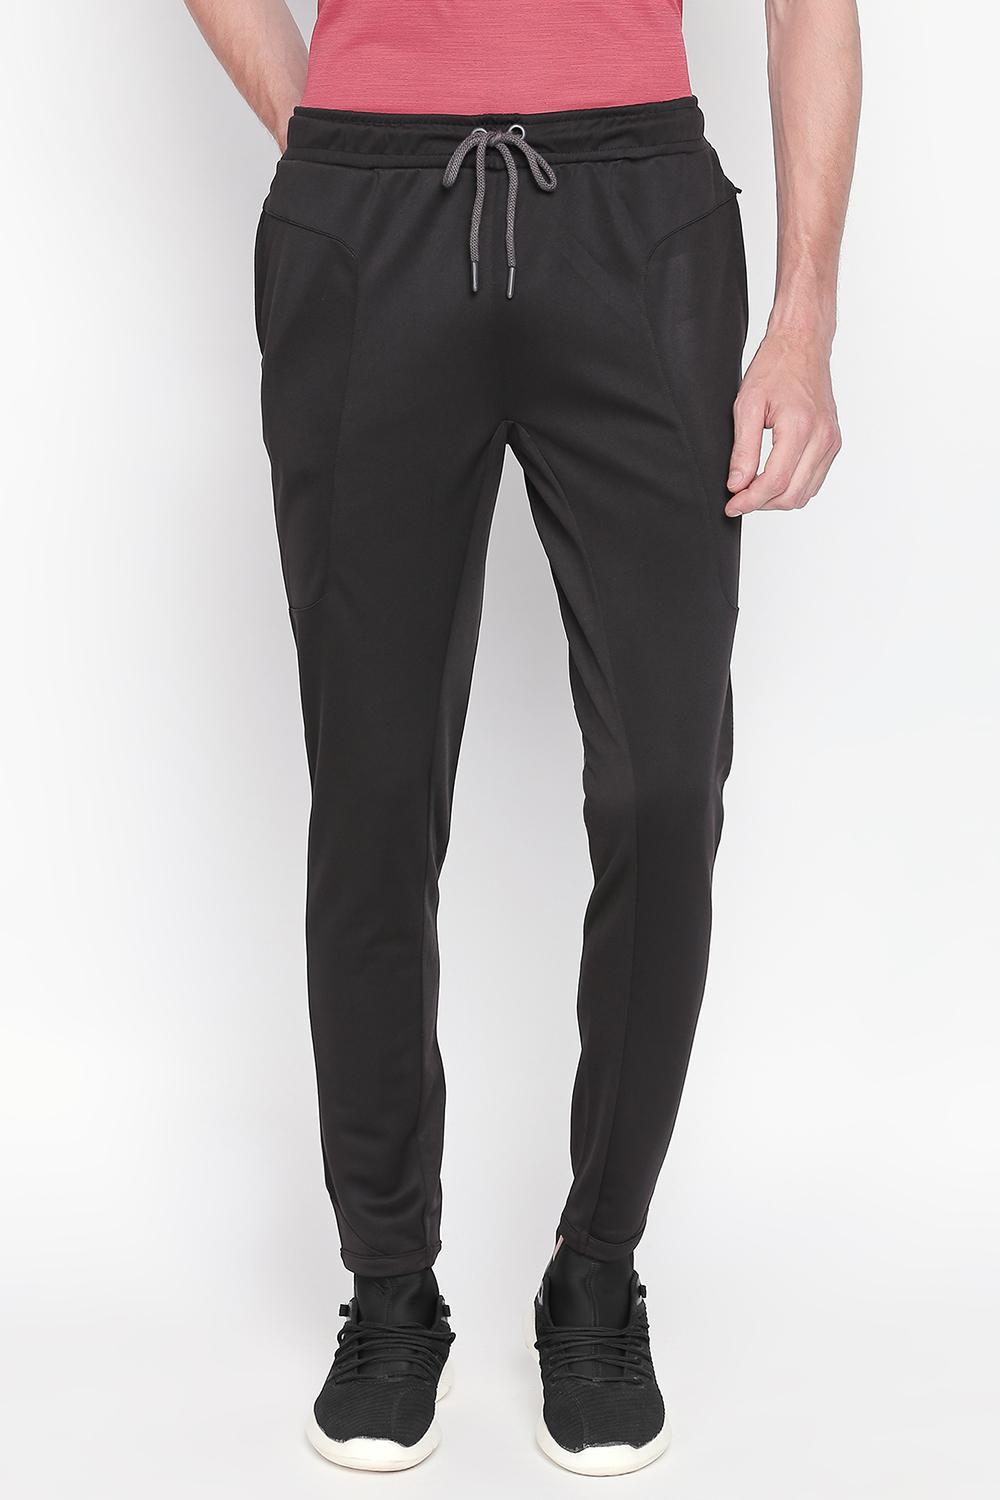 974aa56364daa0 Buy Men Activewear Online in India - Track Pants, Sports and Gym ...